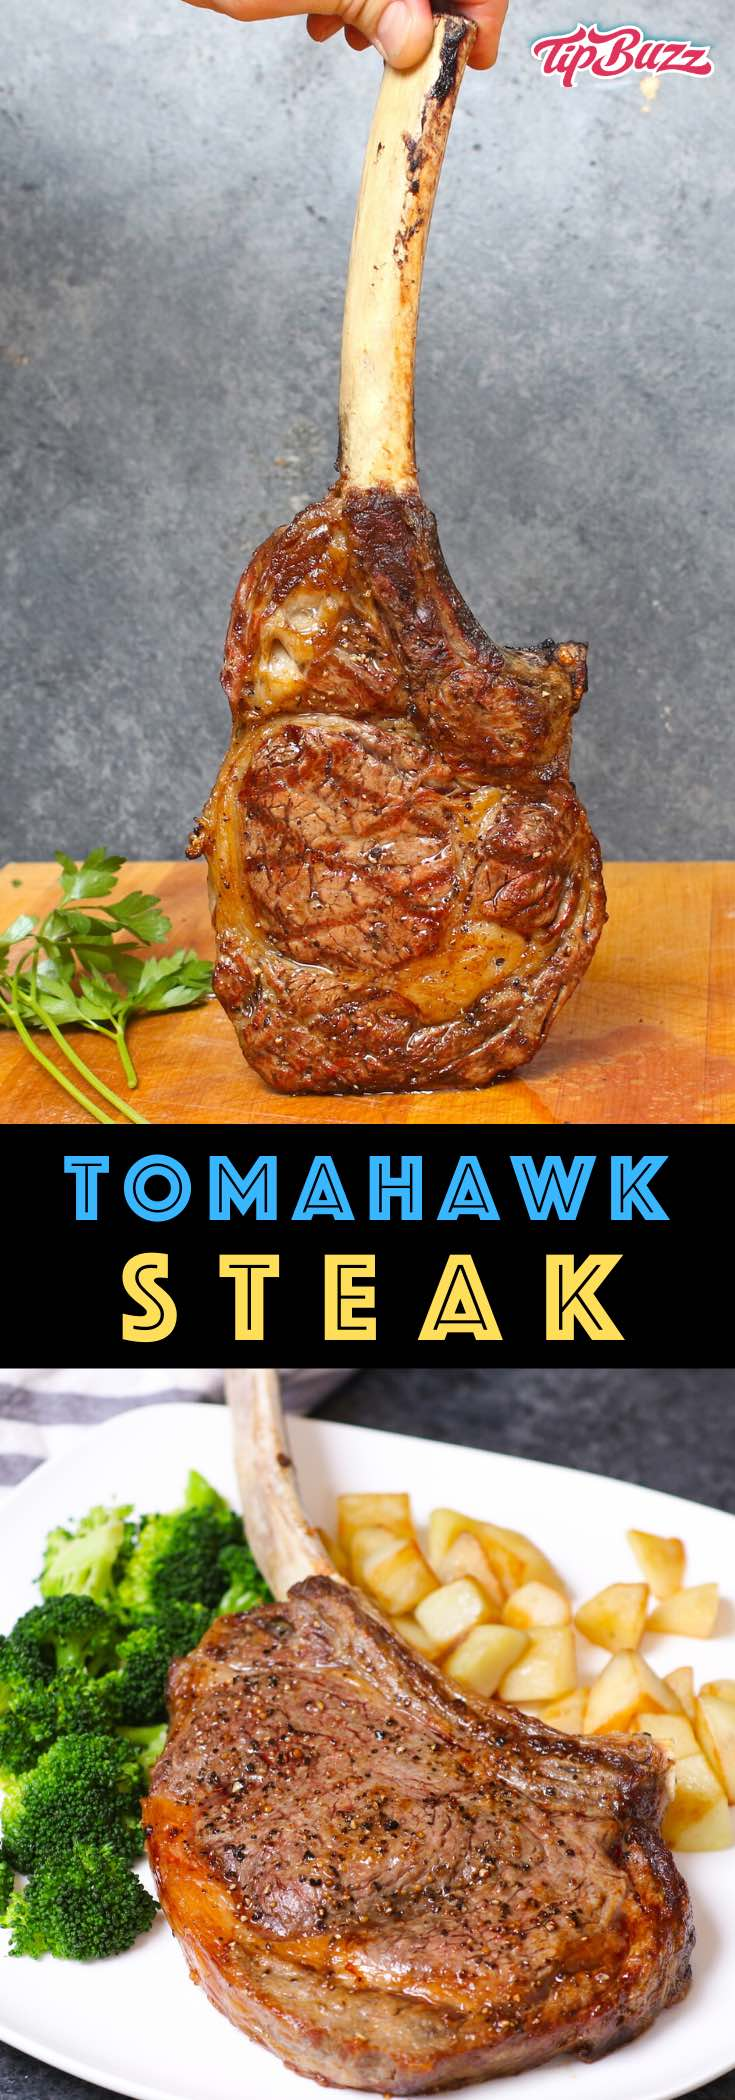 Tomahawk Steak is a steak lover's dream with tender and juicy ribeye meat and an extra-long bone for a dramatic presentation. This tomahawk ribeye is perfect for a special occasion like holidays, birthdays, Valentine's Day or more.